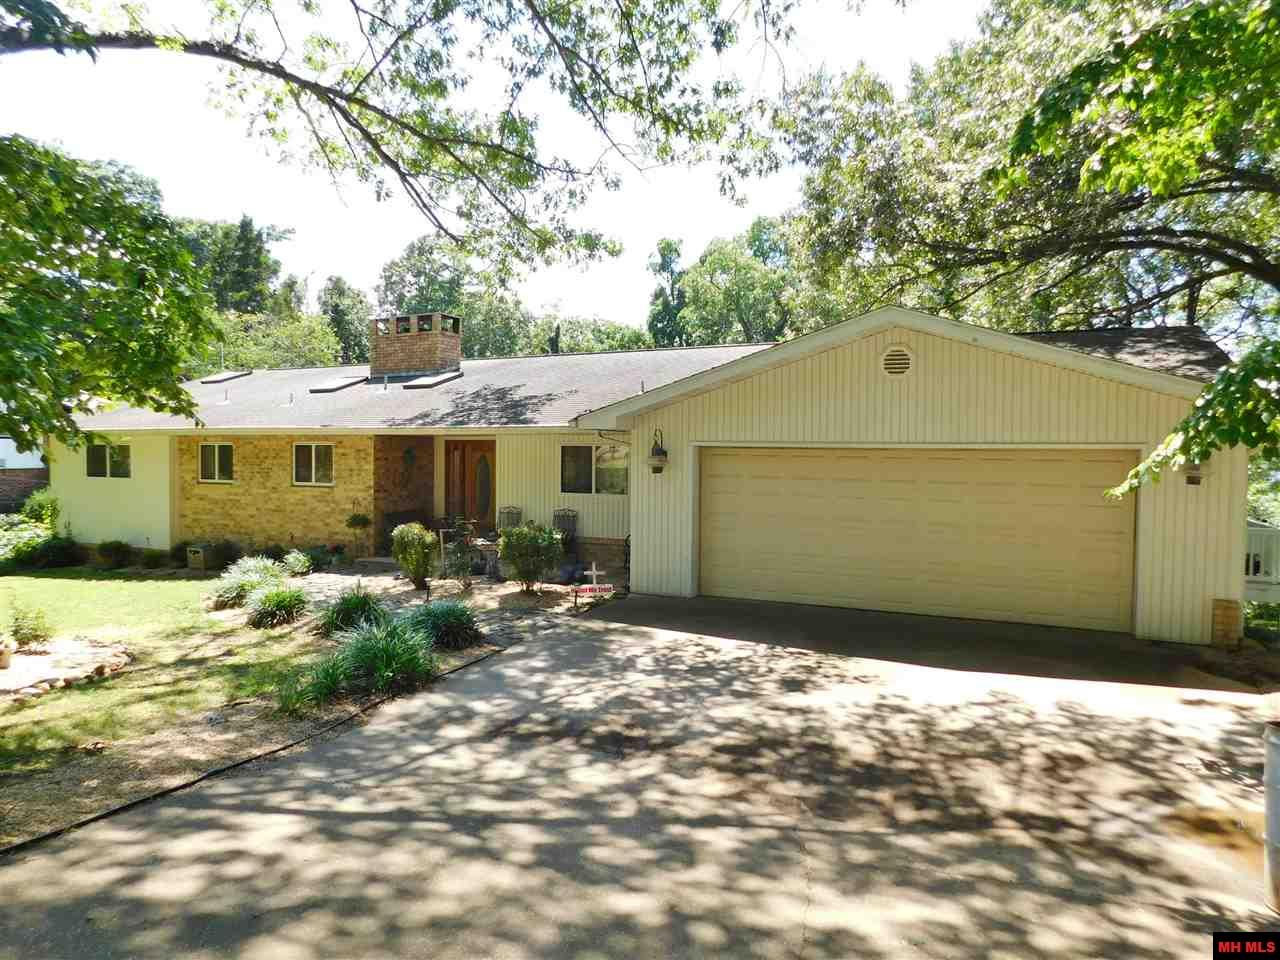 156 LAKEVIEW COVE PLACE, Lakeview, AR 72642